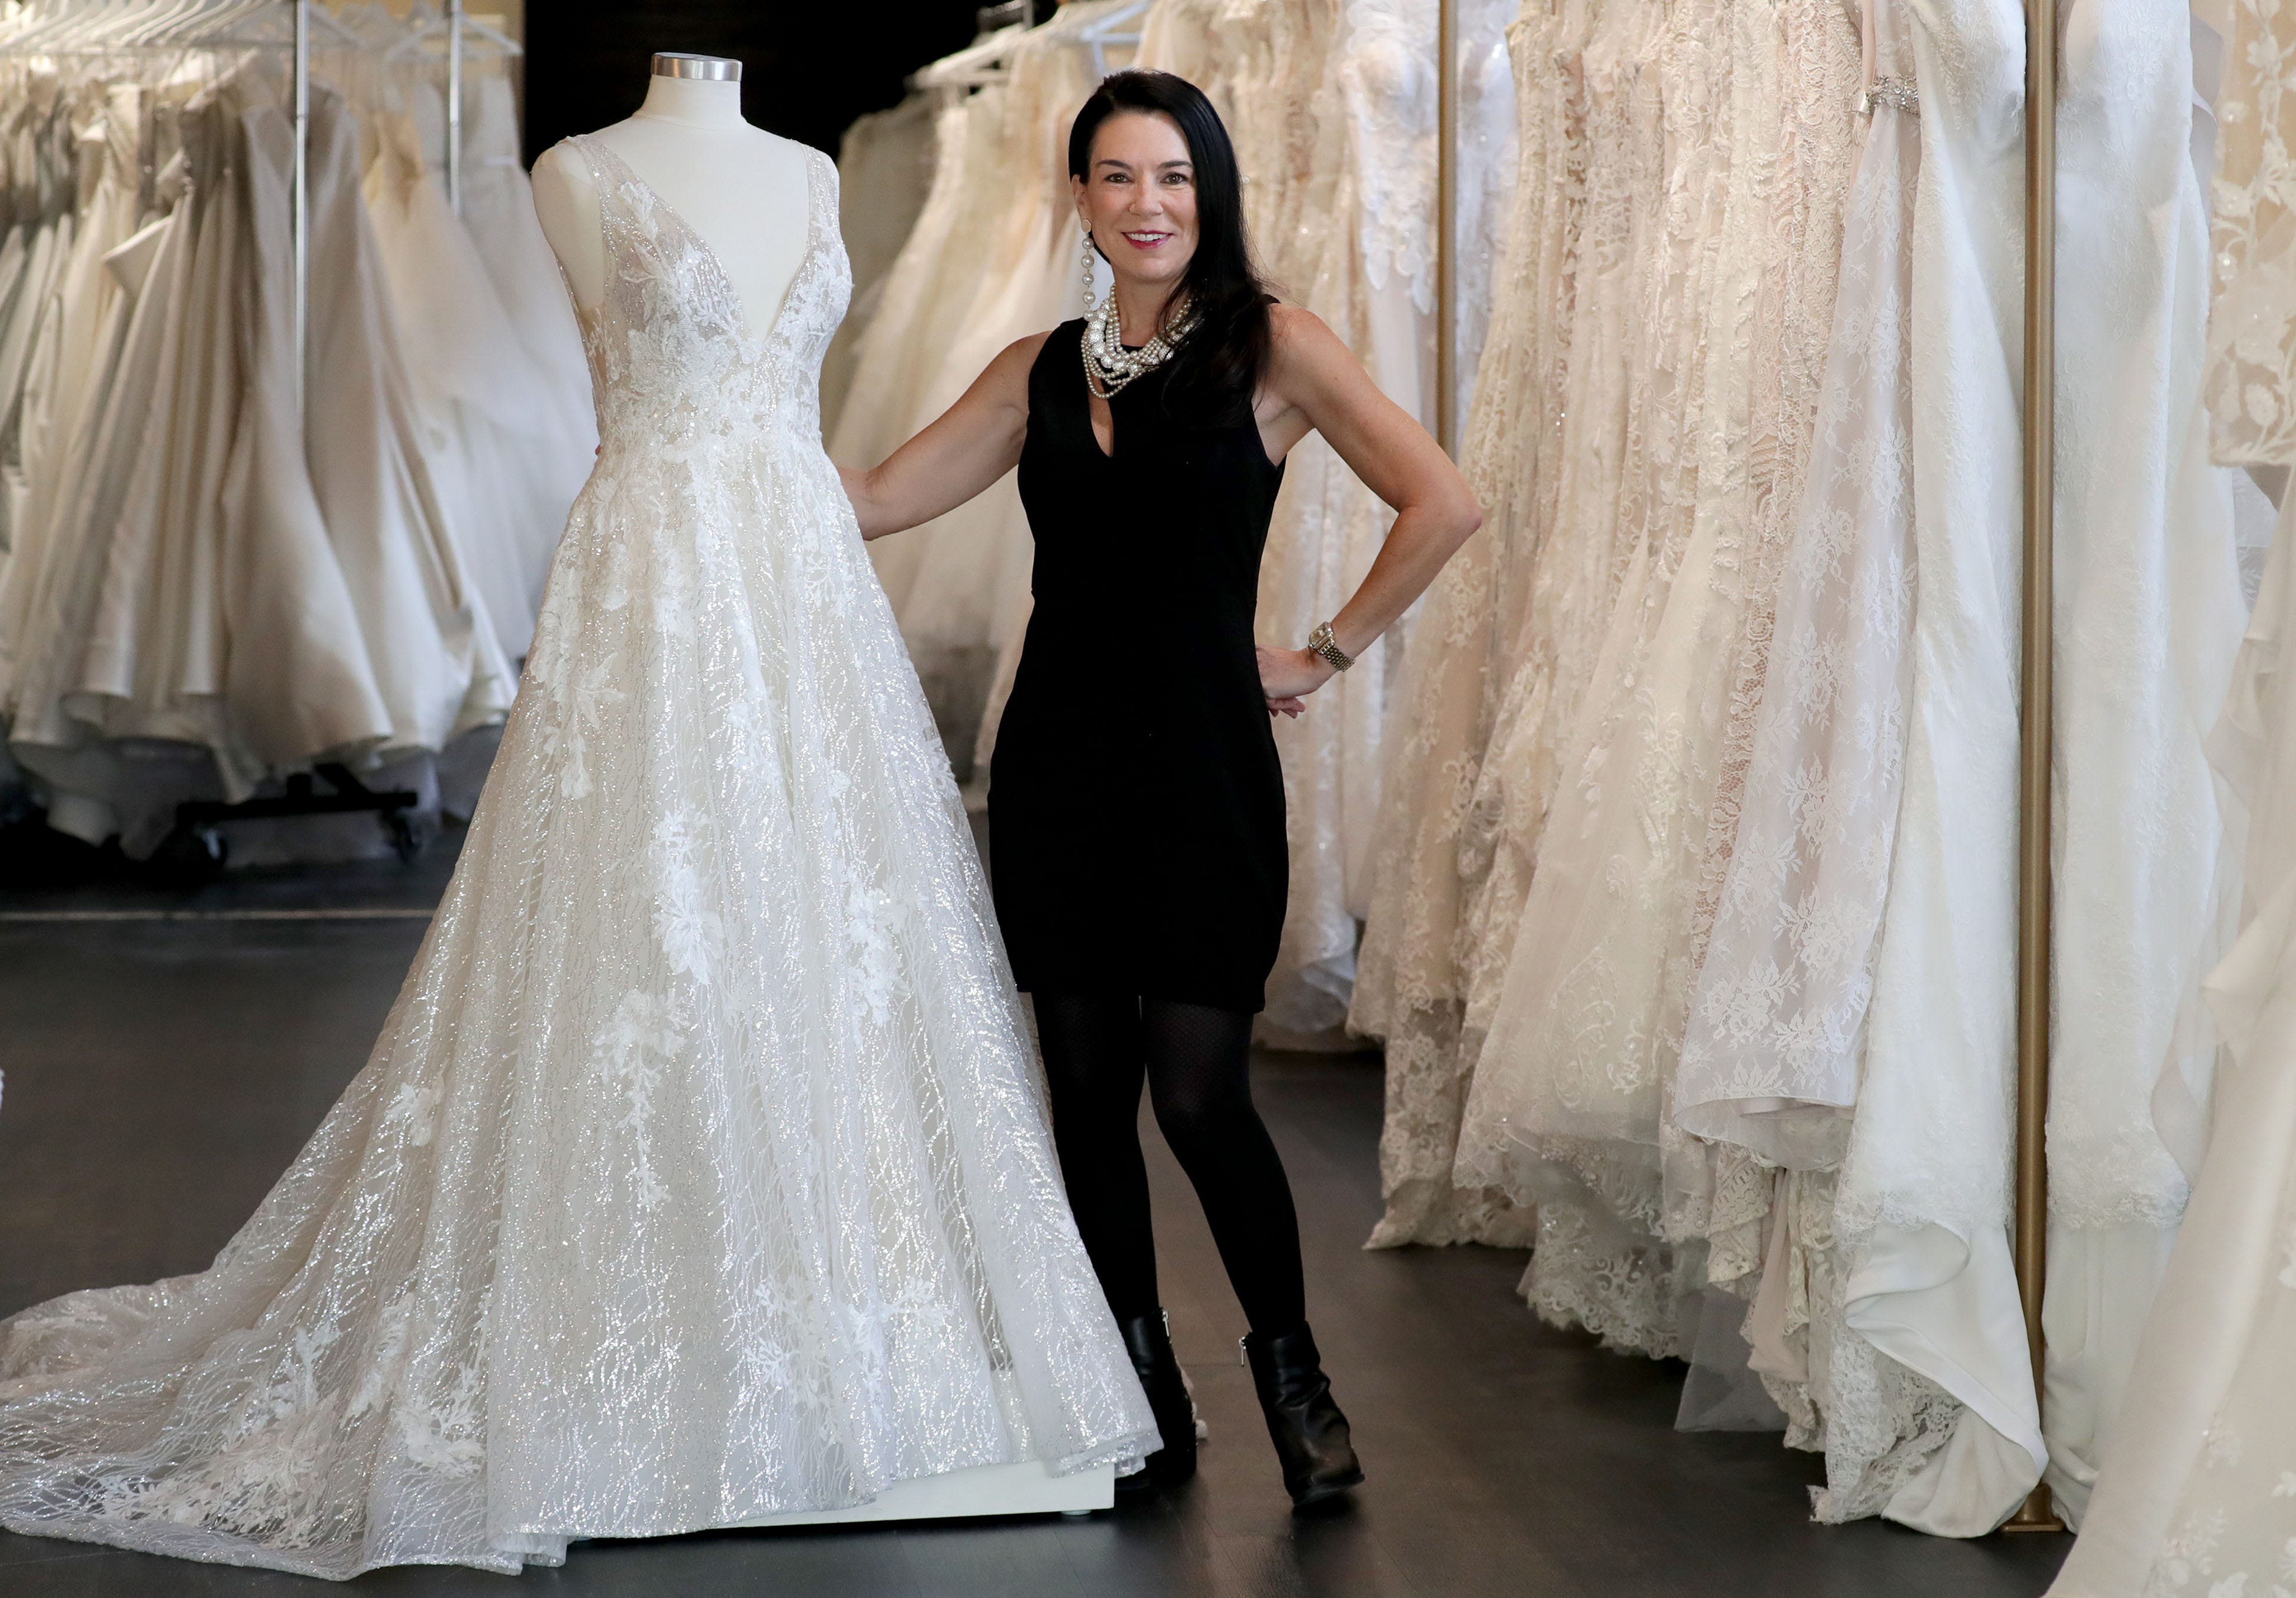 White Dress Off The Rack bridal boutique opening in Walker's Point